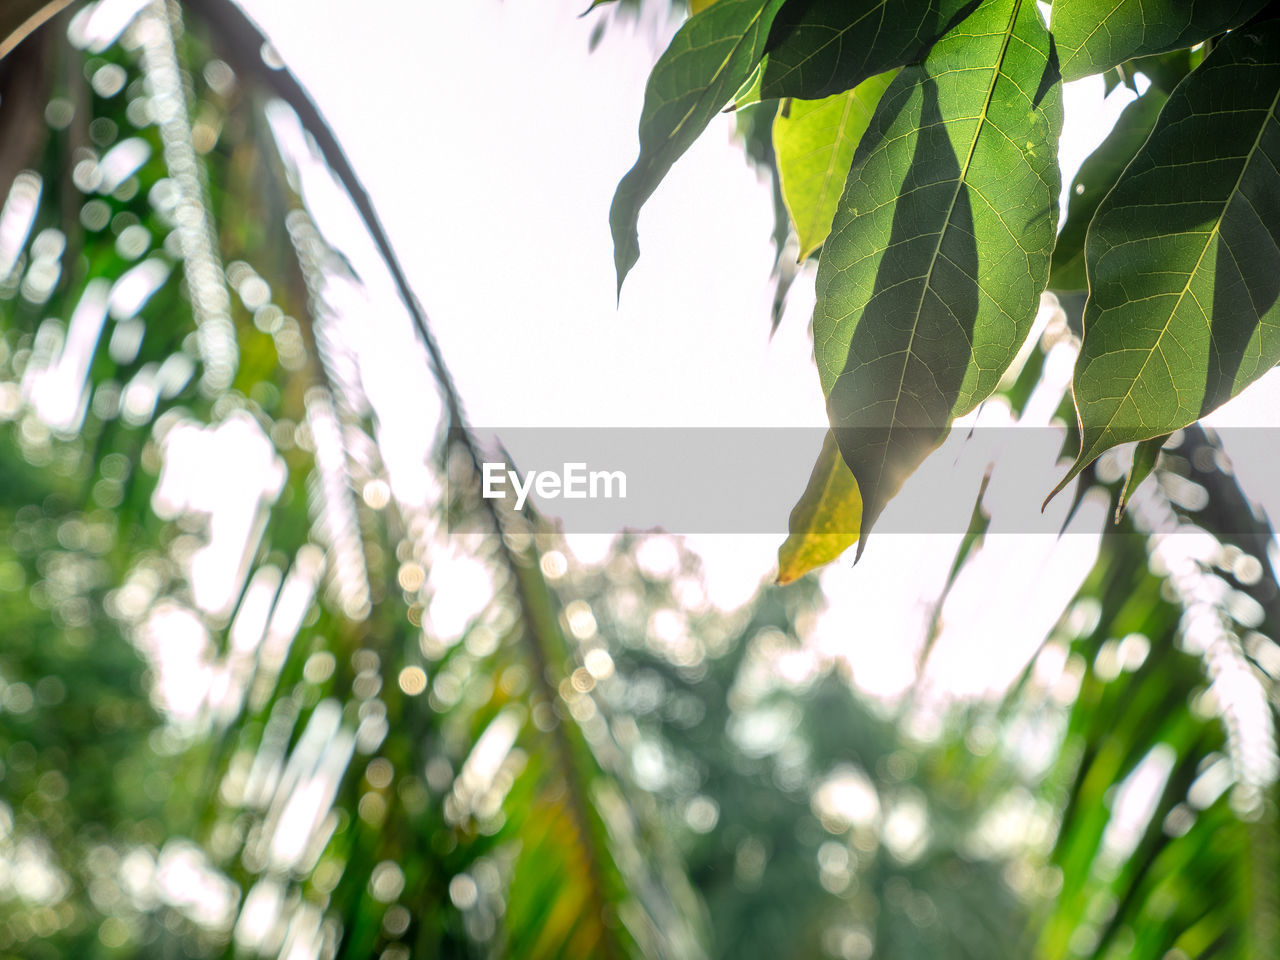 leaf, plant part, plant, growth, low angle view, tree, green color, nature, beauty in nature, focus on foreground, day, no people, branch, close-up, outdoors, sky, selective focus, tranquility, hanging, leaves, directly below